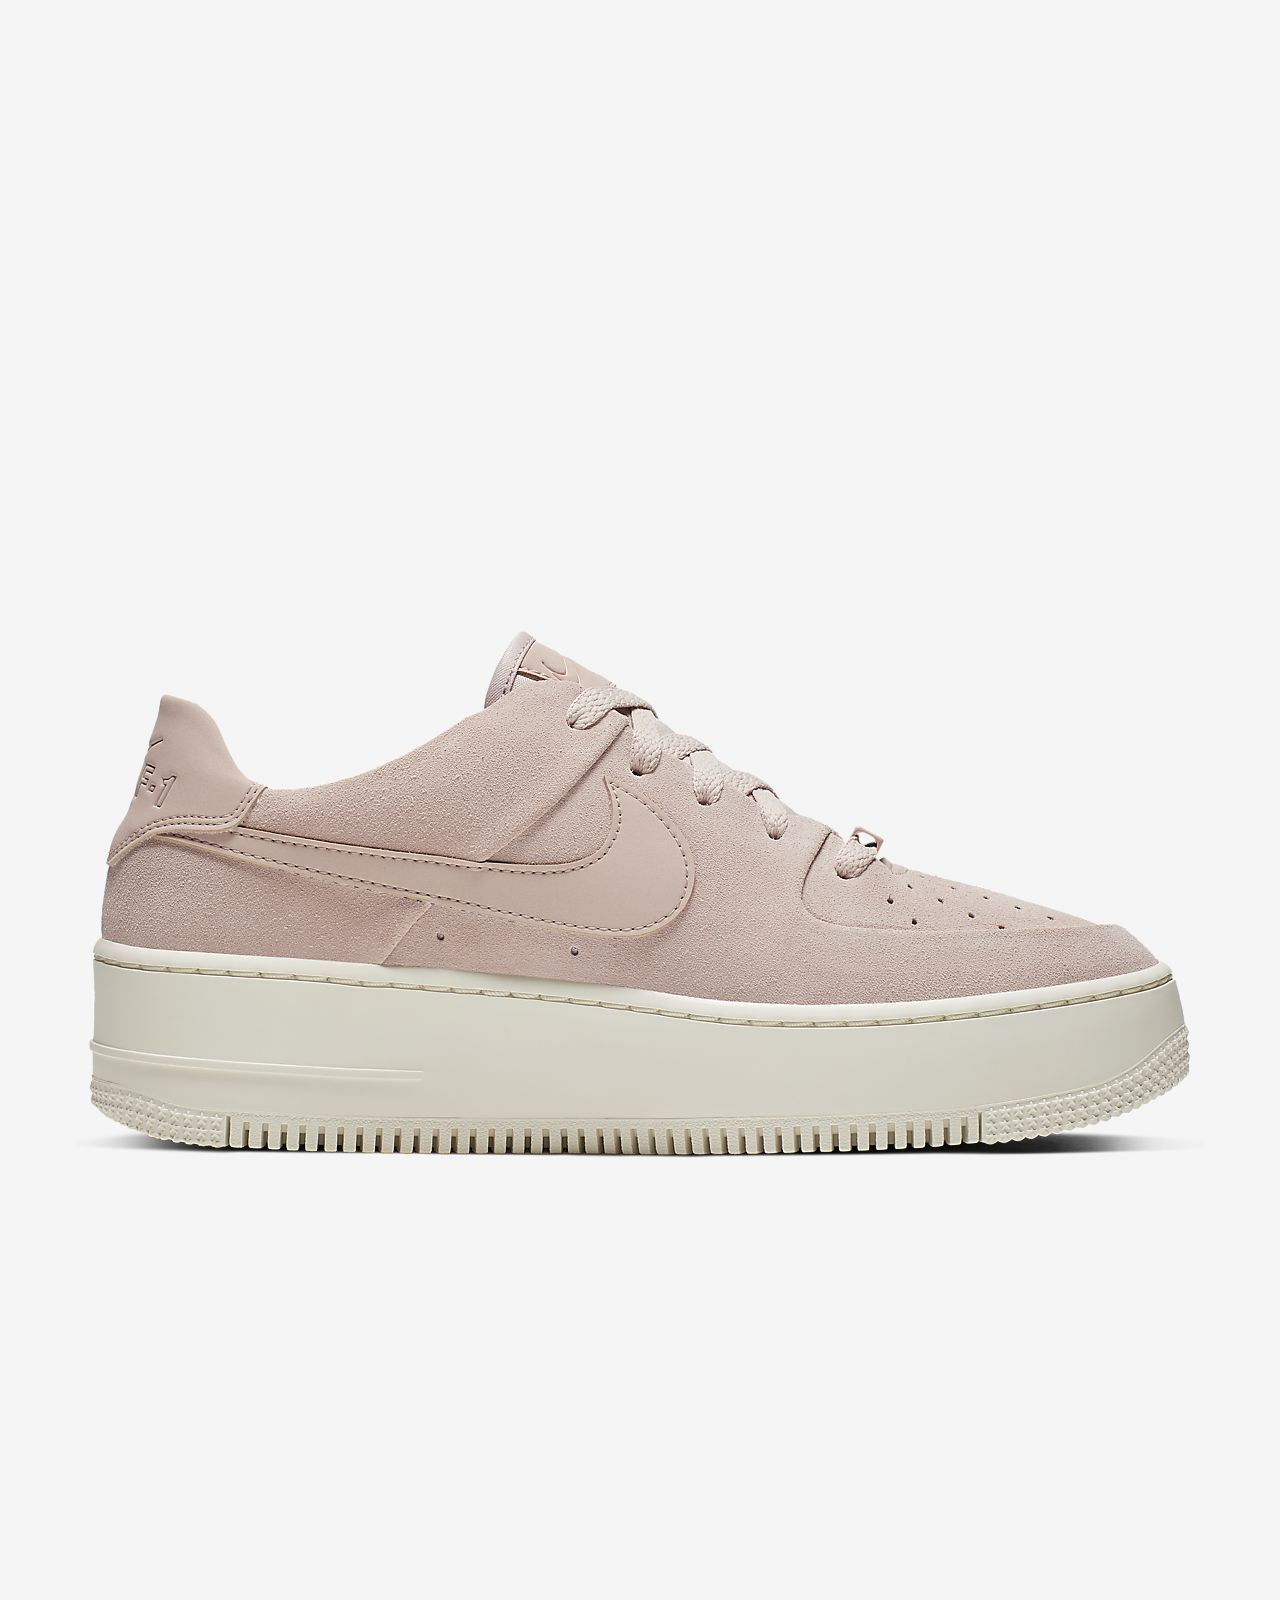 competitive price 046e8 9361d ... Nike Air Force 1 Sage Low Women s Shoe